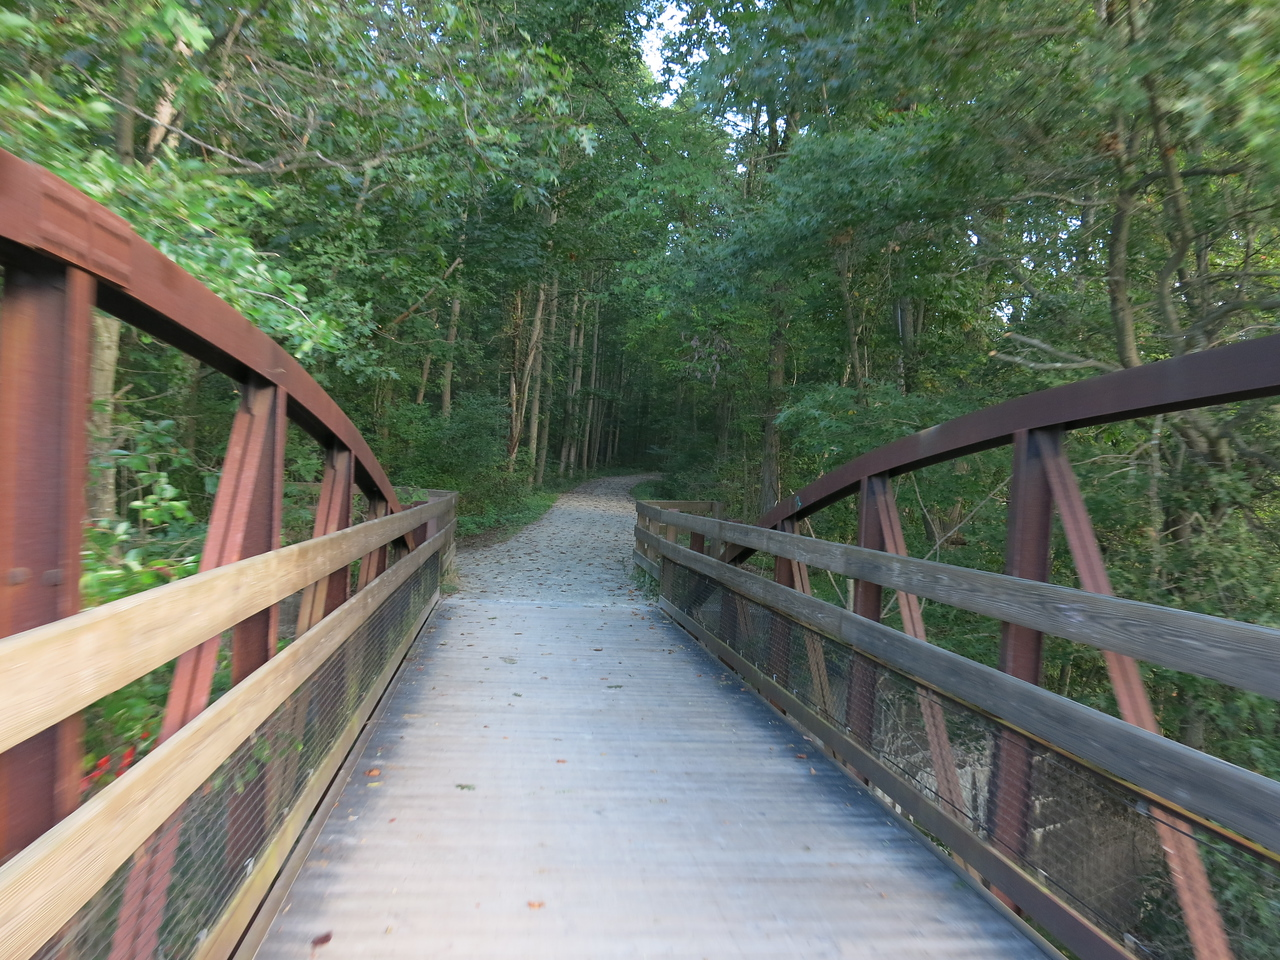 The trail at Ferncliff Peninsula